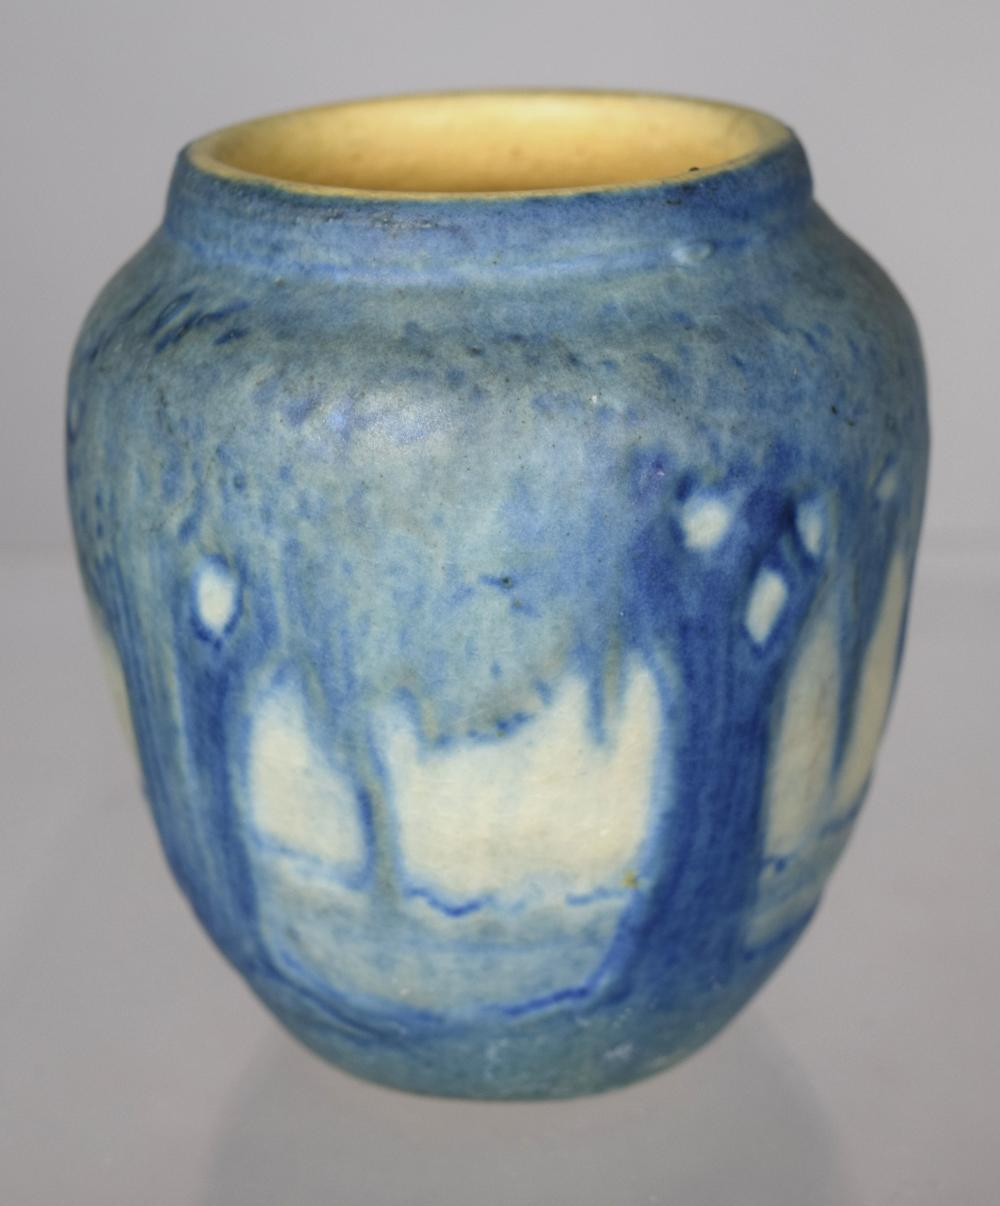 MINIATURE NEWCOMB COLLEGE POTTERY VASE: